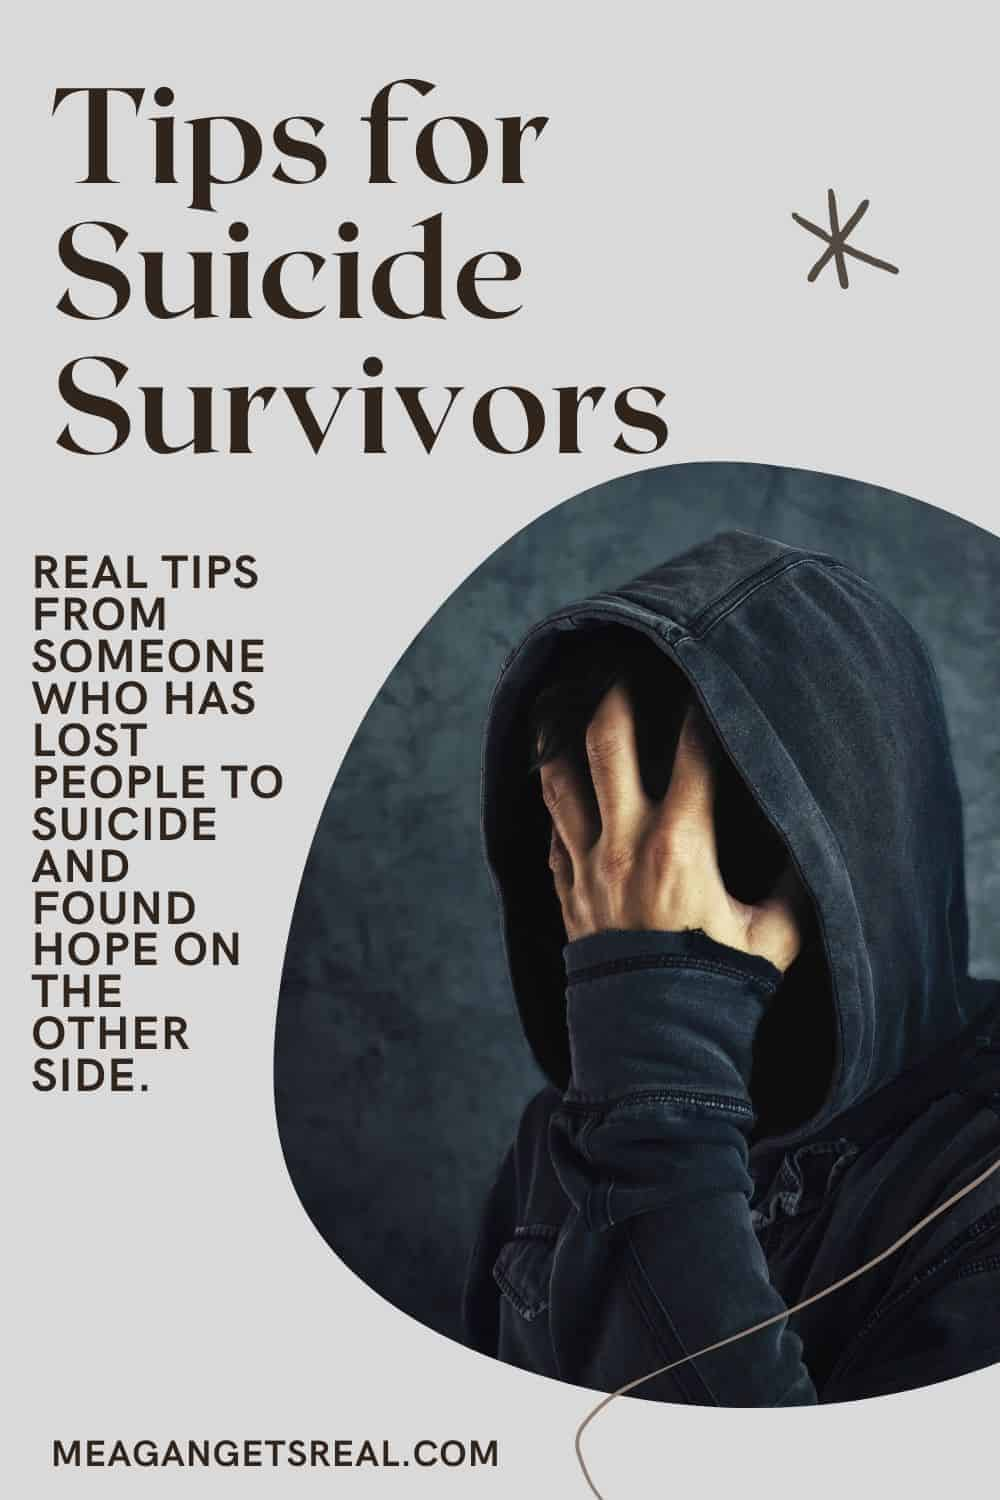 Tips for suicide survivors who are struggling with the loss of someone to suicide. Real tips from someone who has lost someone to suicide.